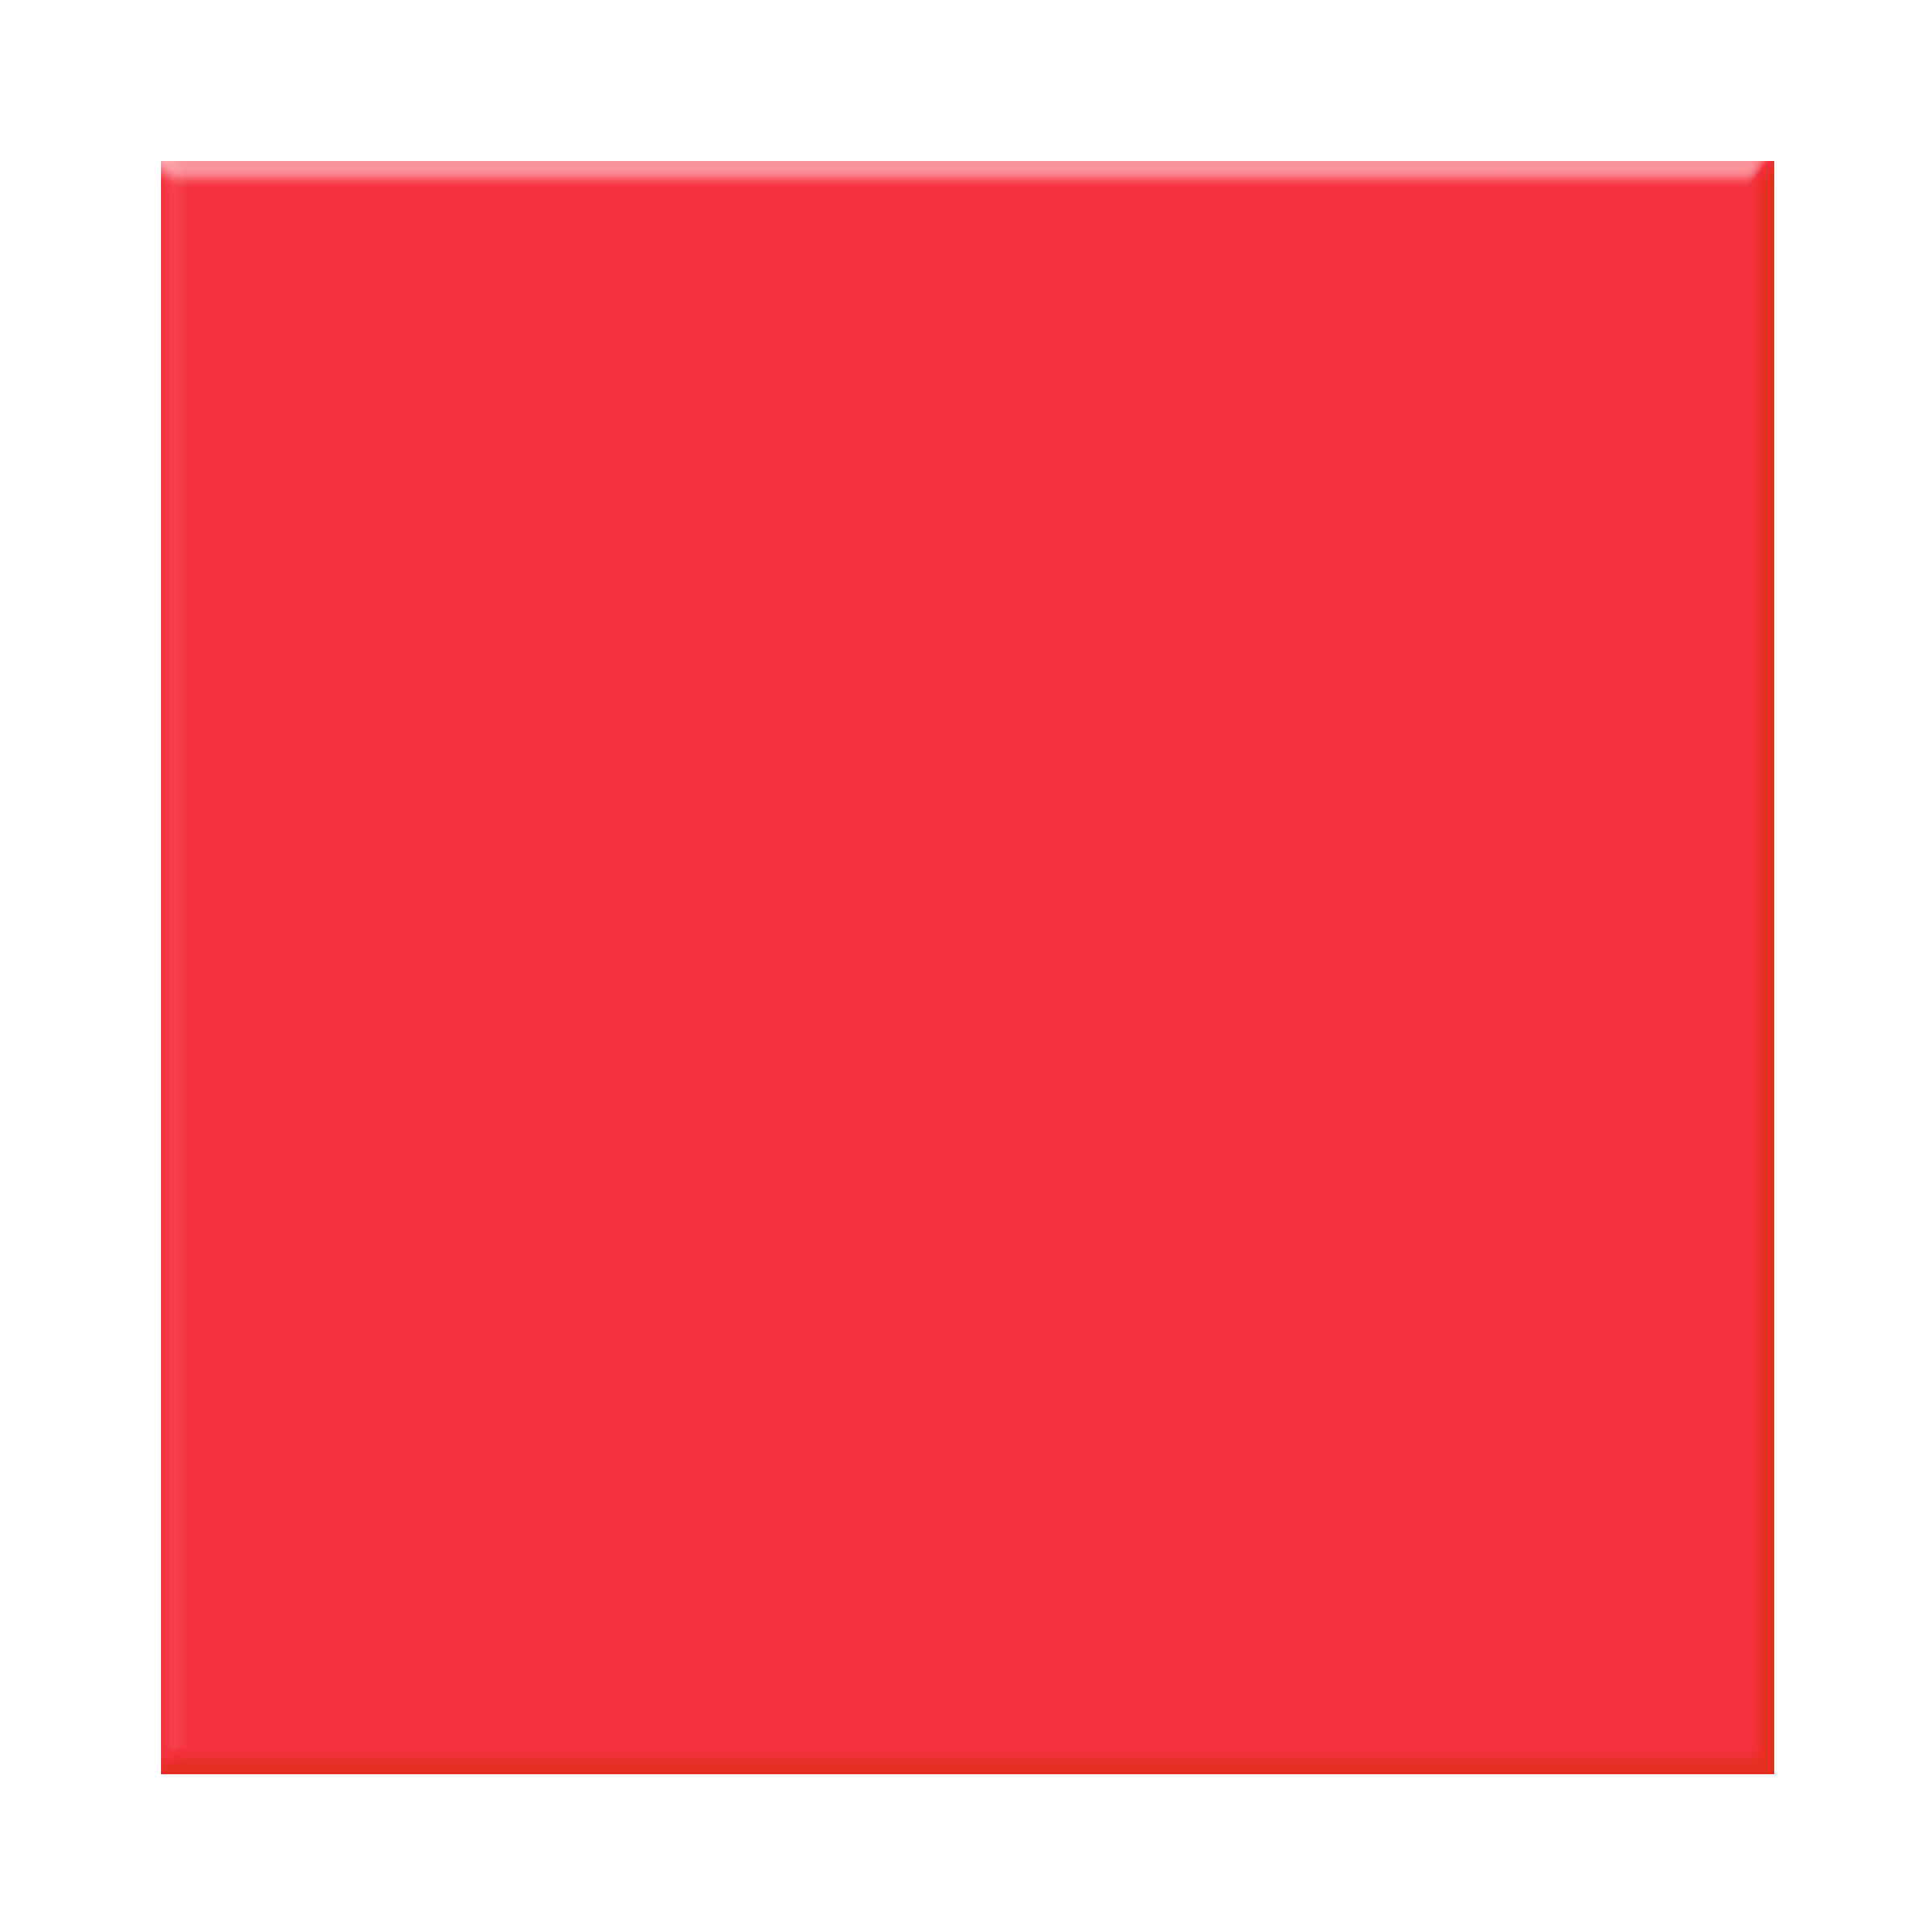 Red square png #25140.